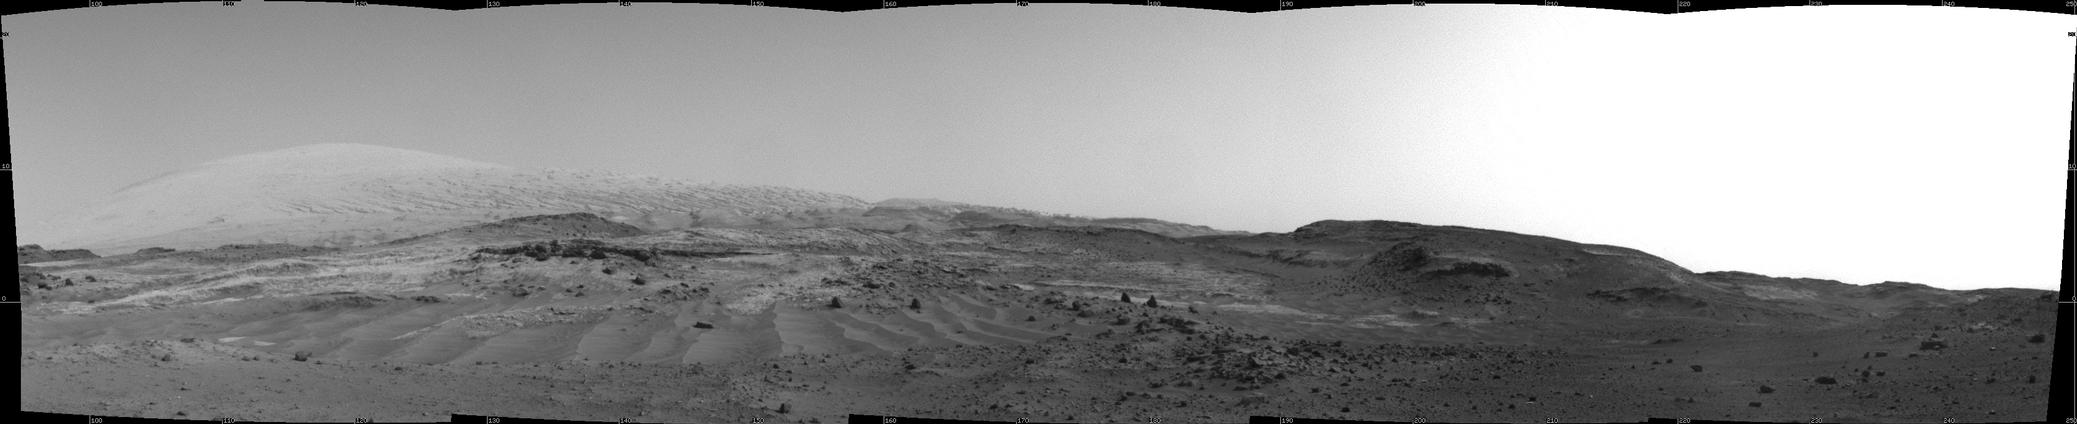 "NASA's Curiosity Mars rover used its Navigation Camera to capture this view on April 11, 2015, during passage through a valley called ""Artist's Drive"" on the route up Mount Sharp."